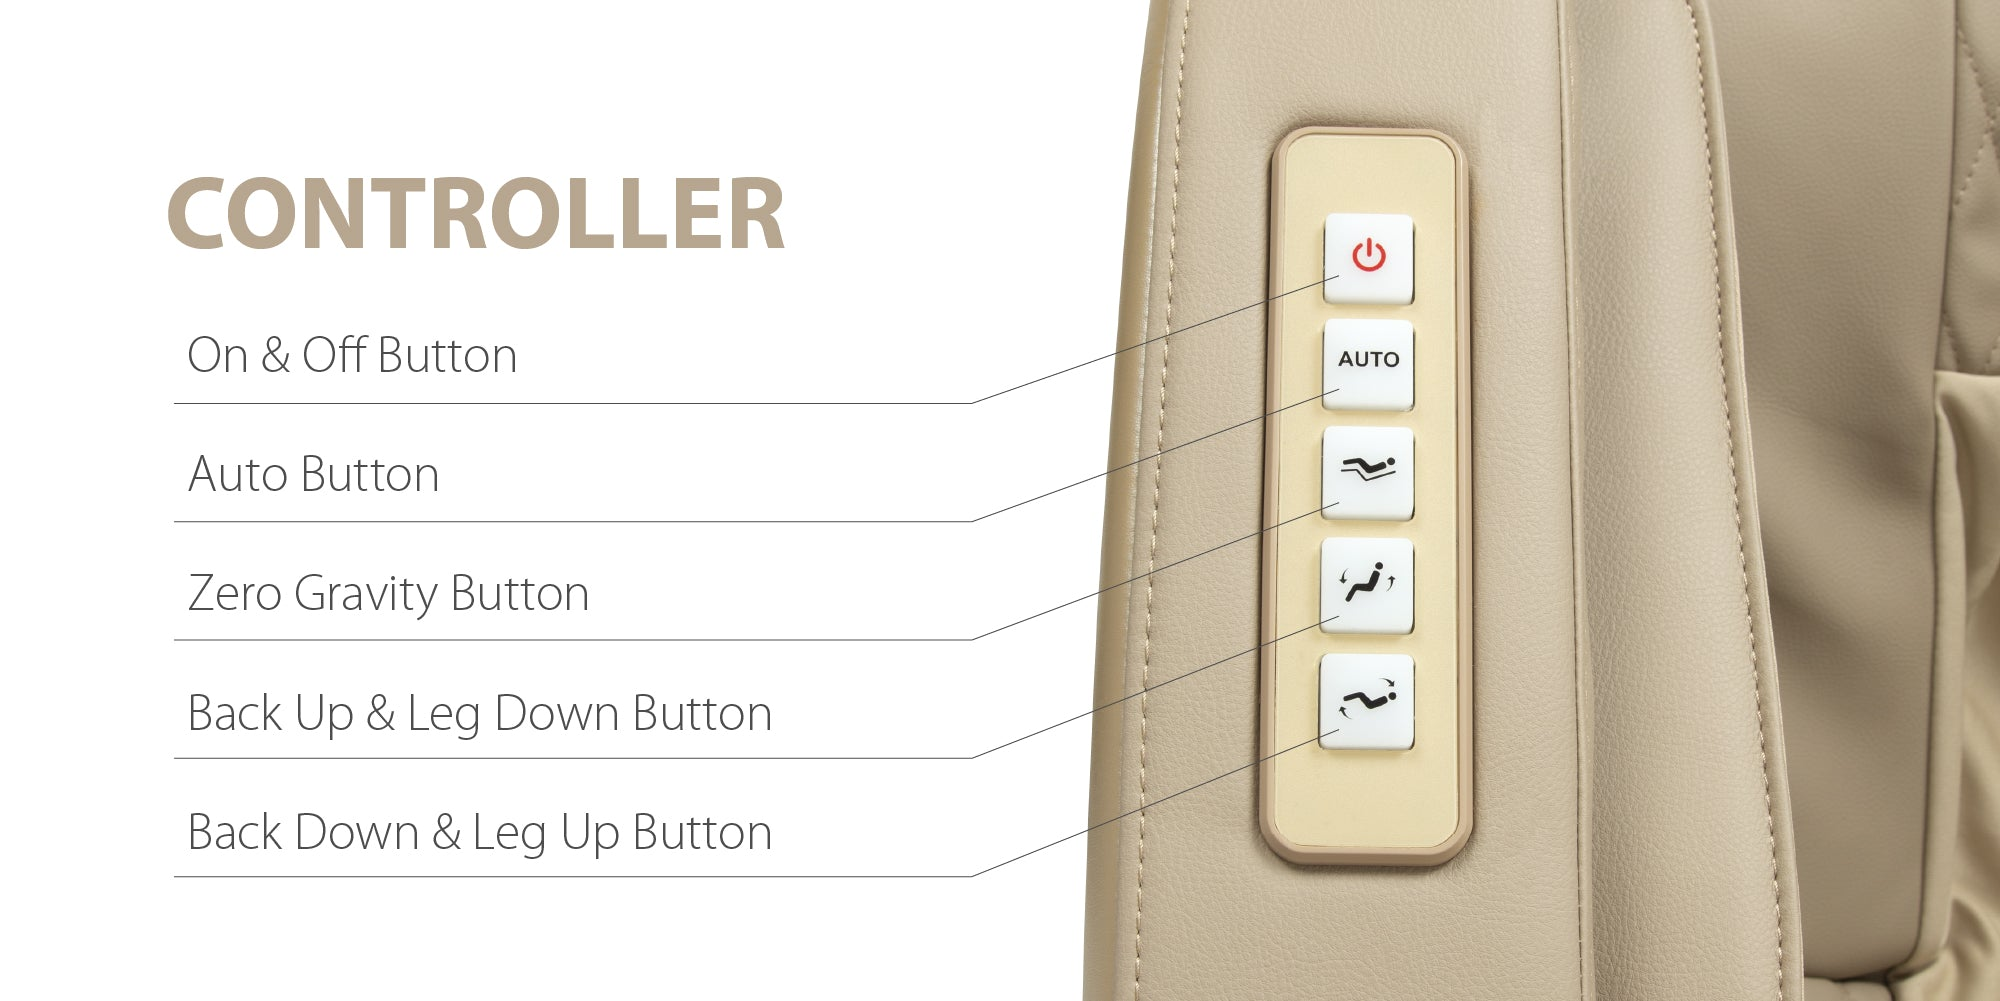 Controller: On&Off button, Auto button, Zero gravity button, Back up & Leg down button, Back down & Leg up button